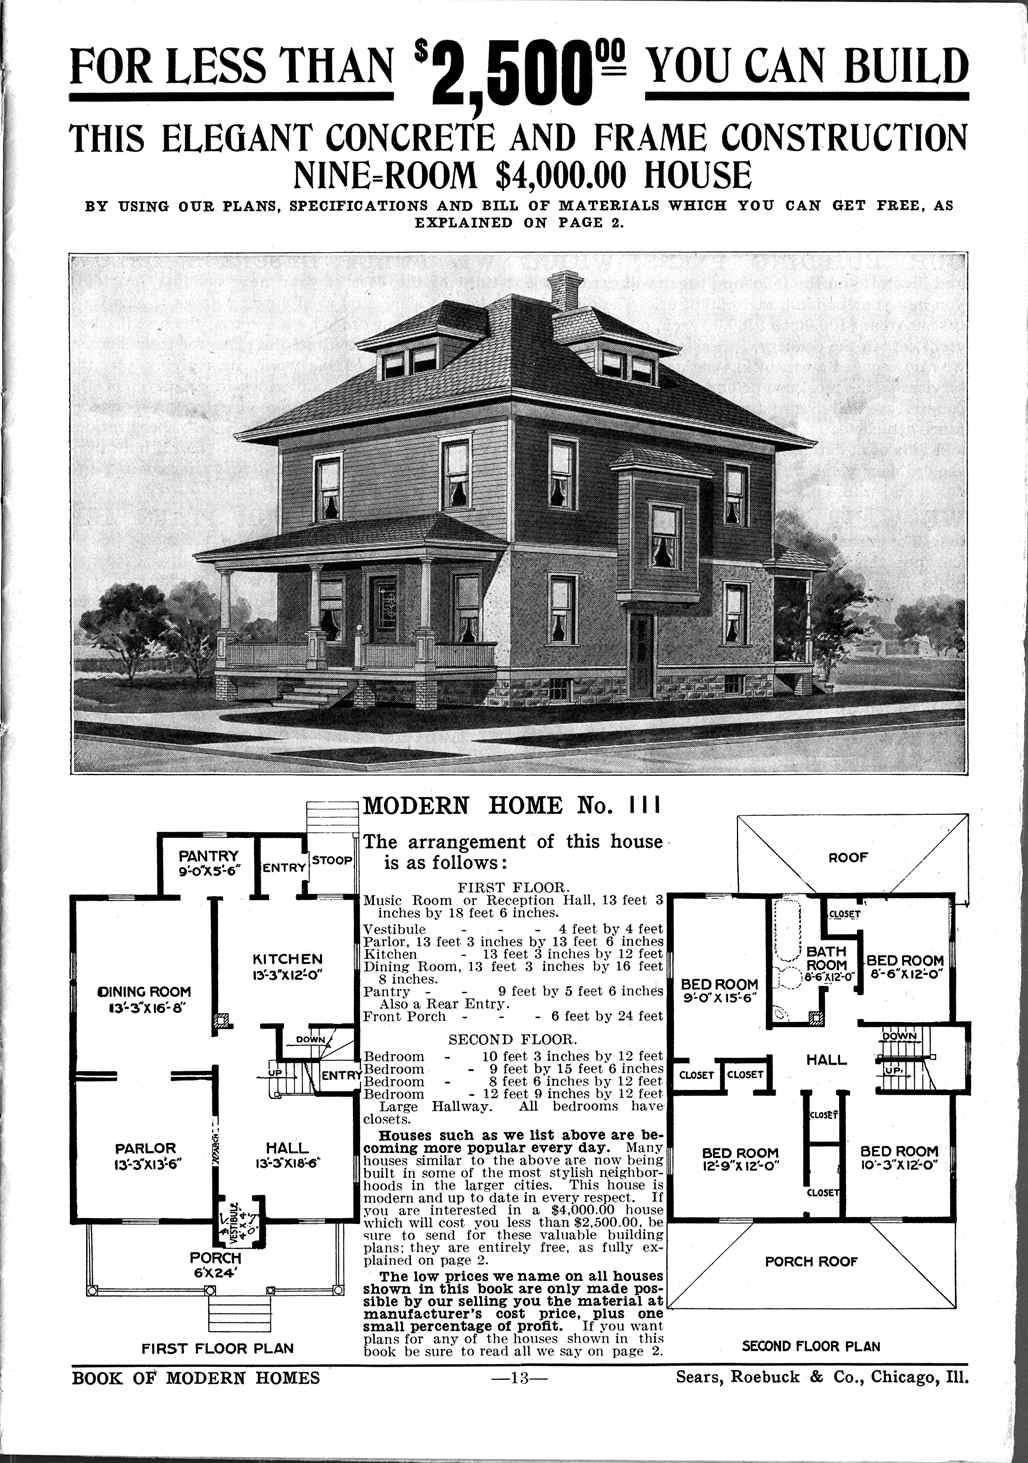 1920s sears catalog home still standing